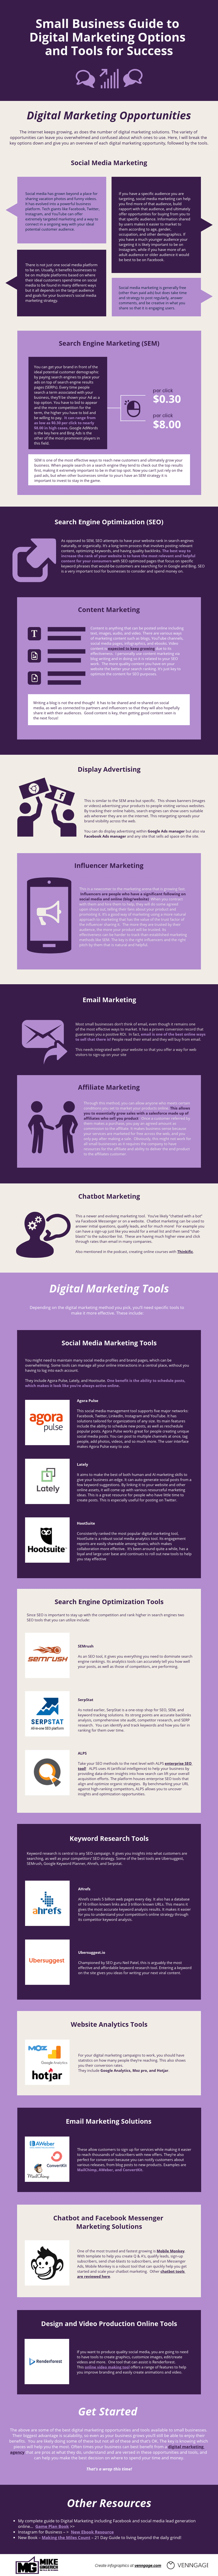 digital marketing opportunities and tools infographic